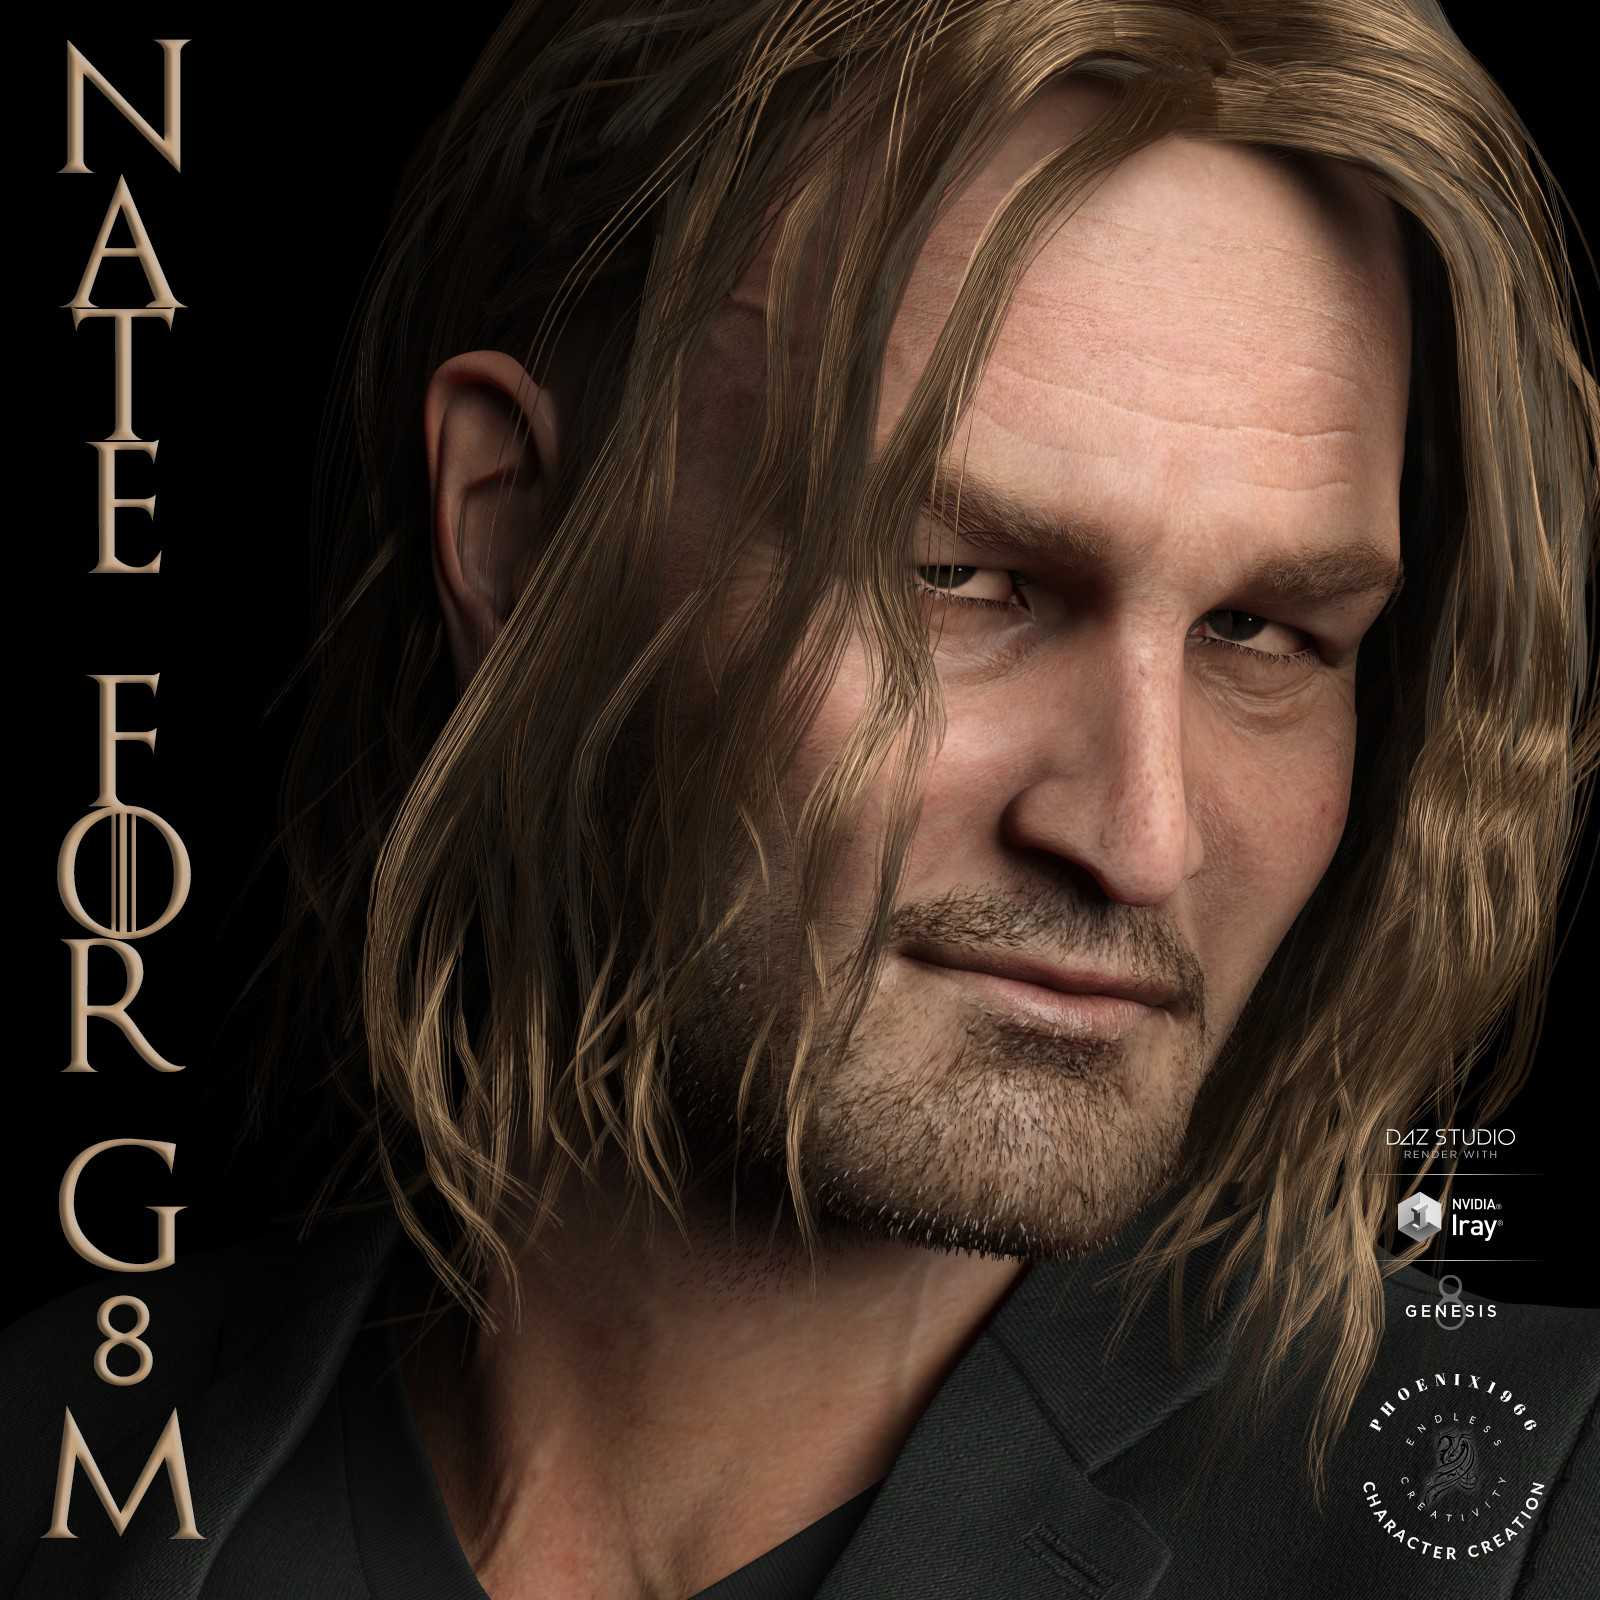 Phx Nate for Genesis 8 Male